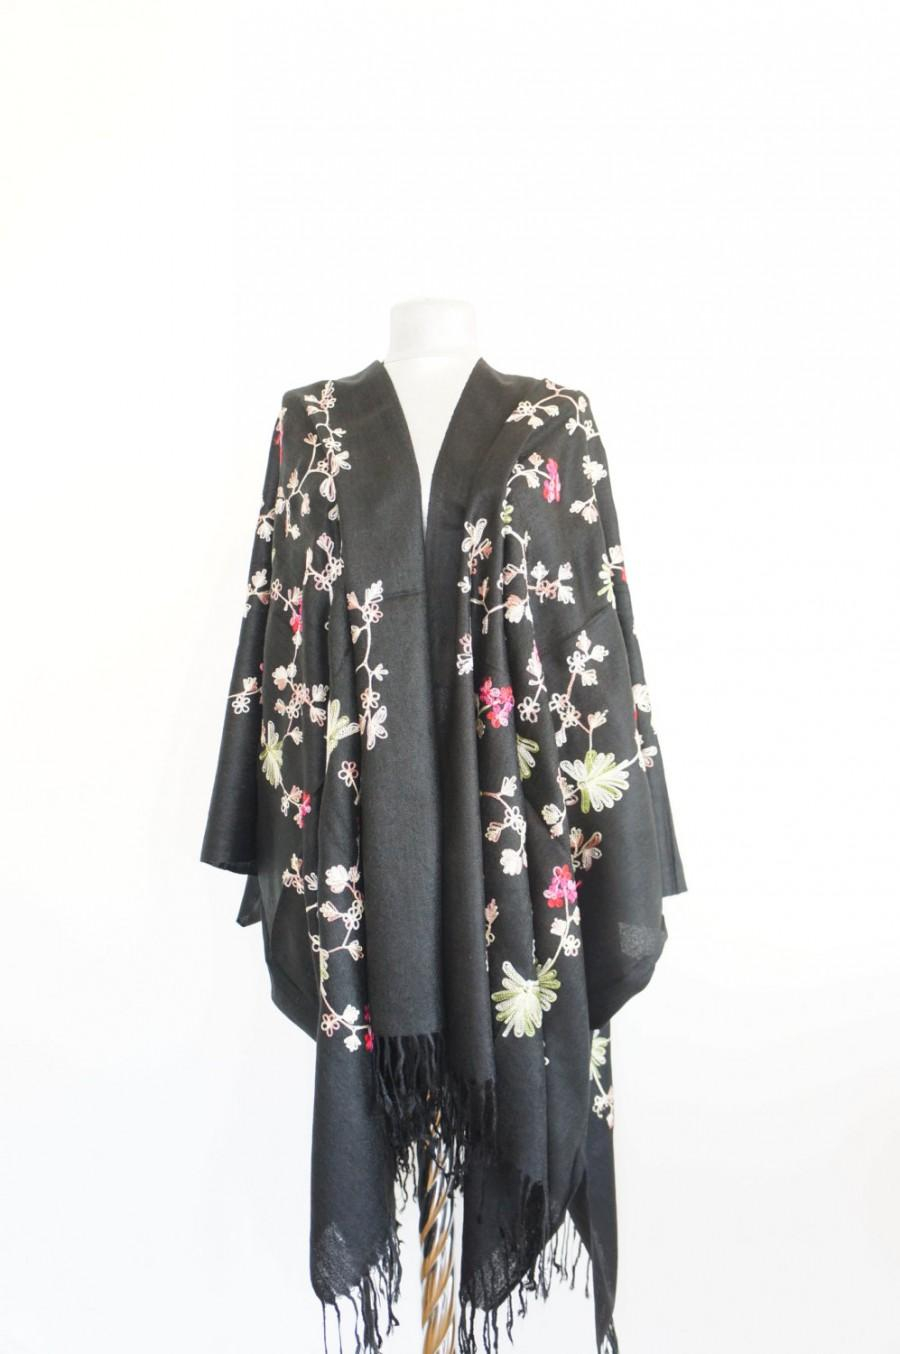 Bohemian Embroidery Patterns Embroidered Kimono Floral Kimono Bohemian Kimono Embroidery Patterns